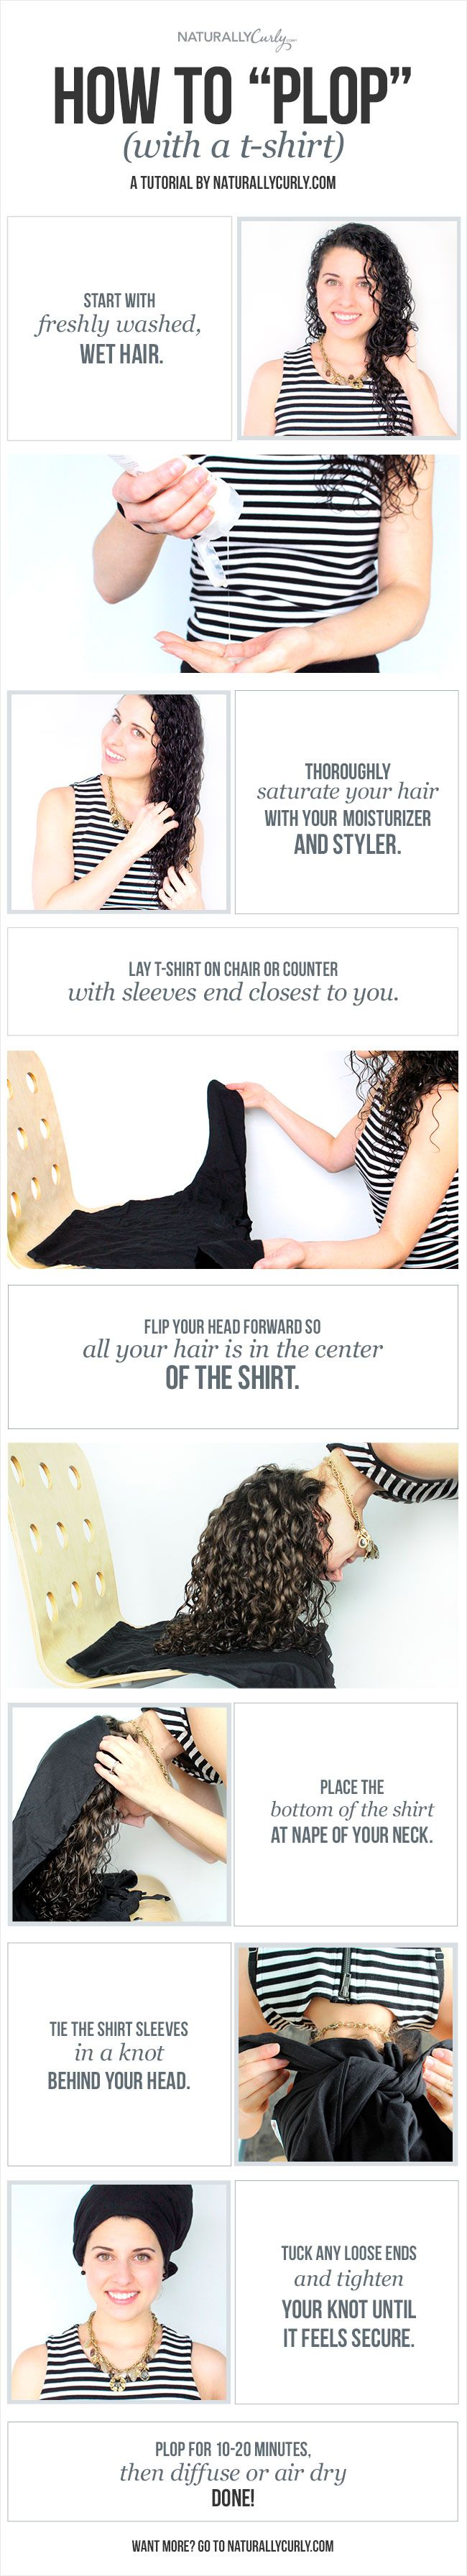 how to get curly hair without s curl